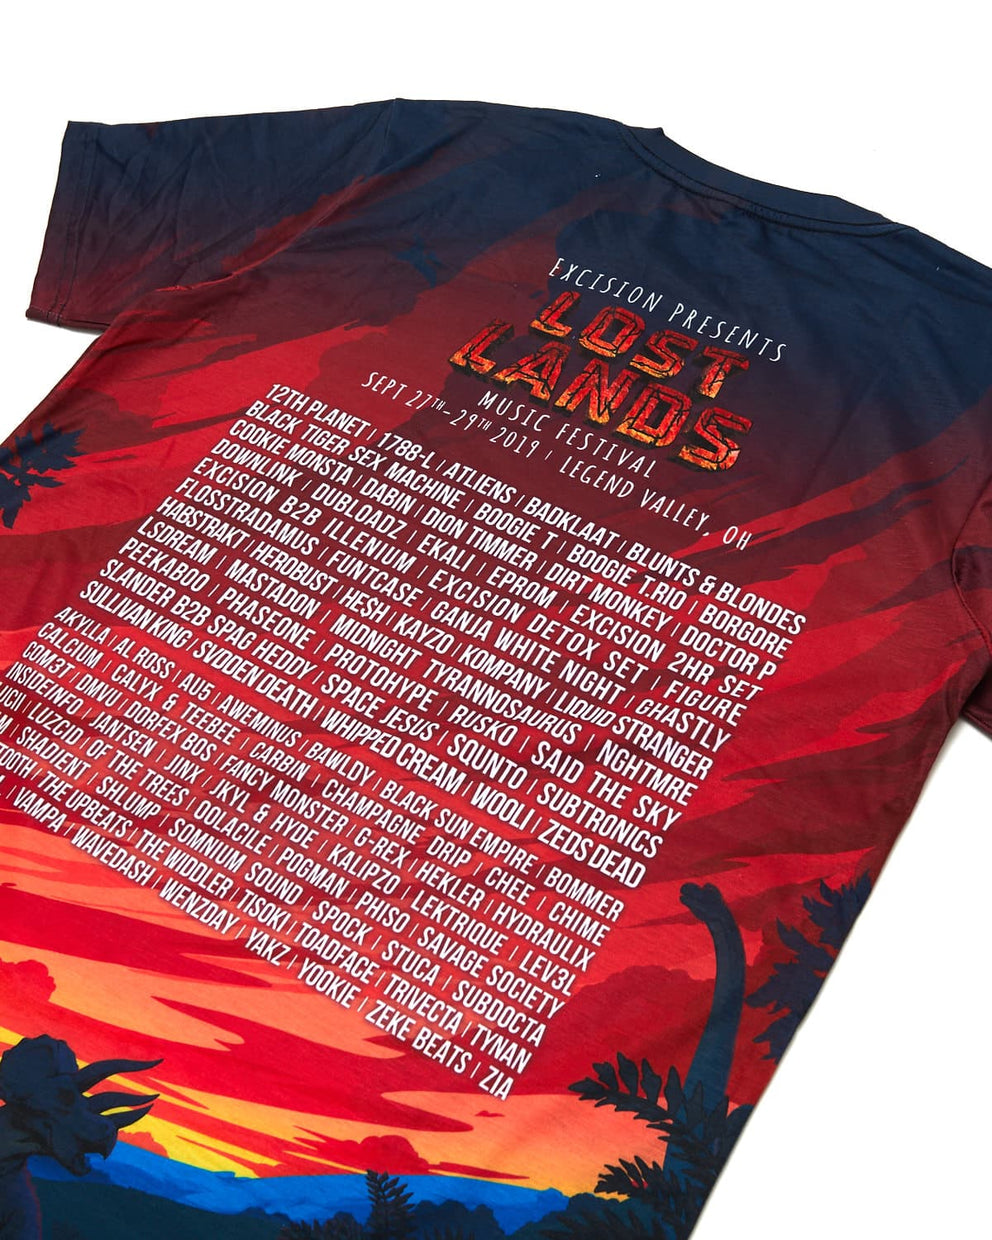 Official Lost Lands 2019 Line Up Dye Sub Tee - Red/Black/Blue